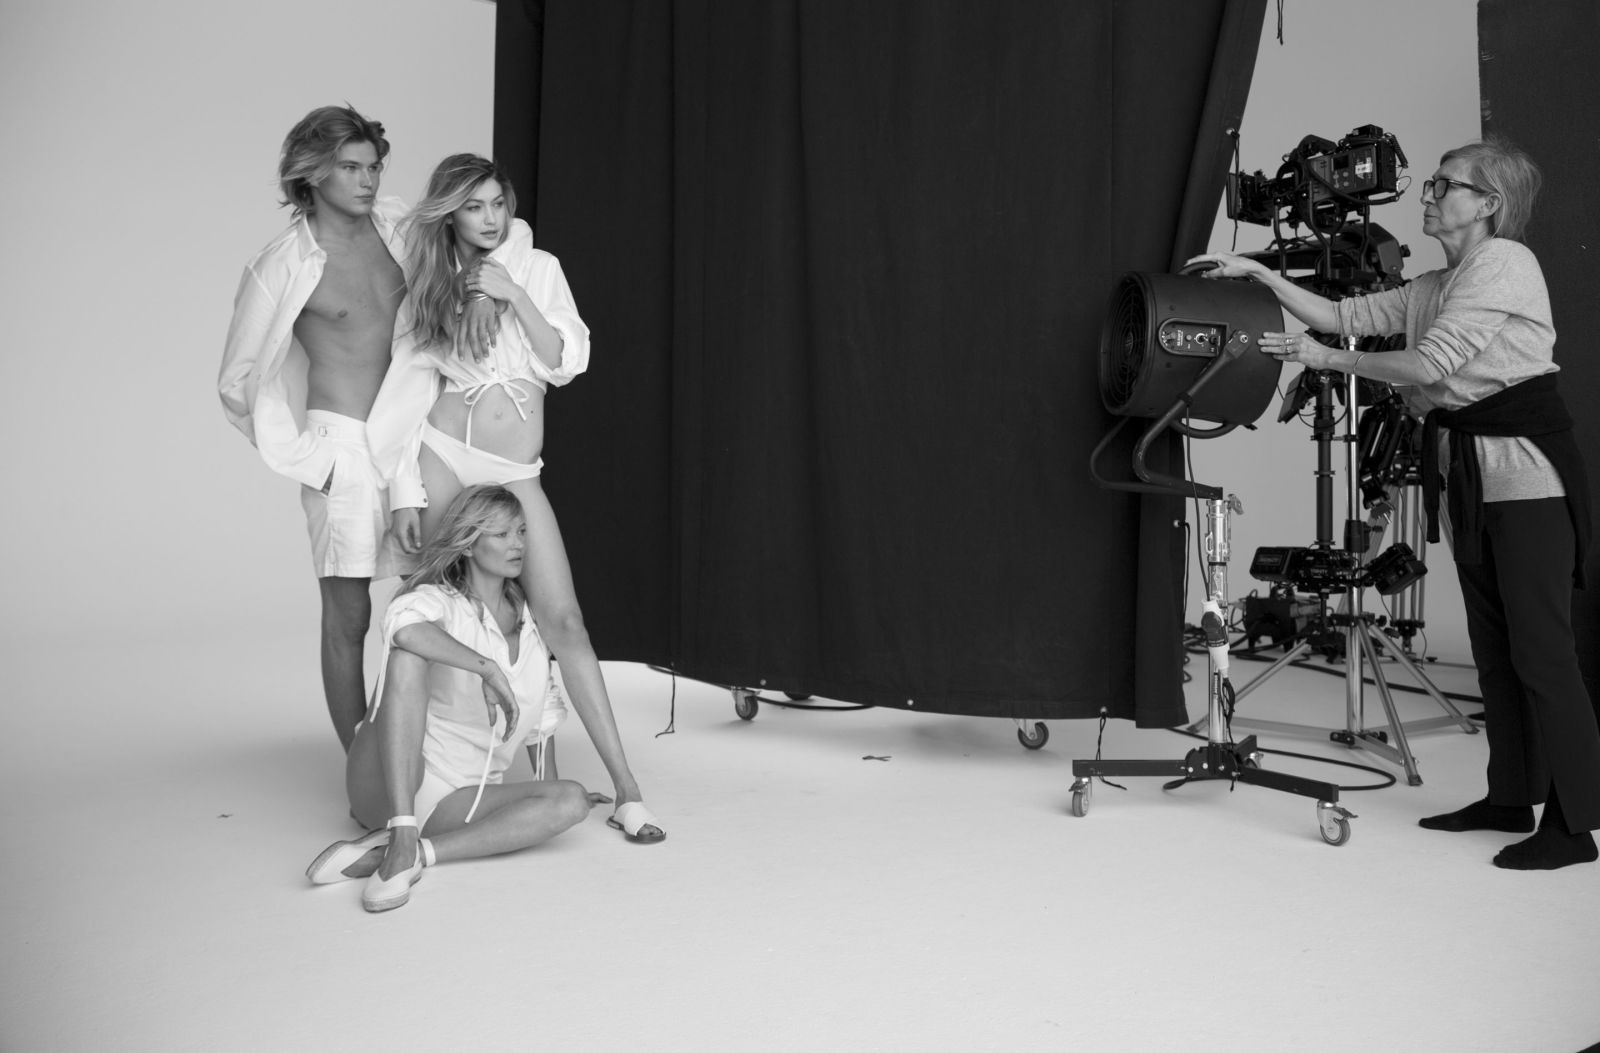 Gigi Hadid And Kate Moss Front Stuart Weitzman's Spring 2018 Campaign white outfits white sandals